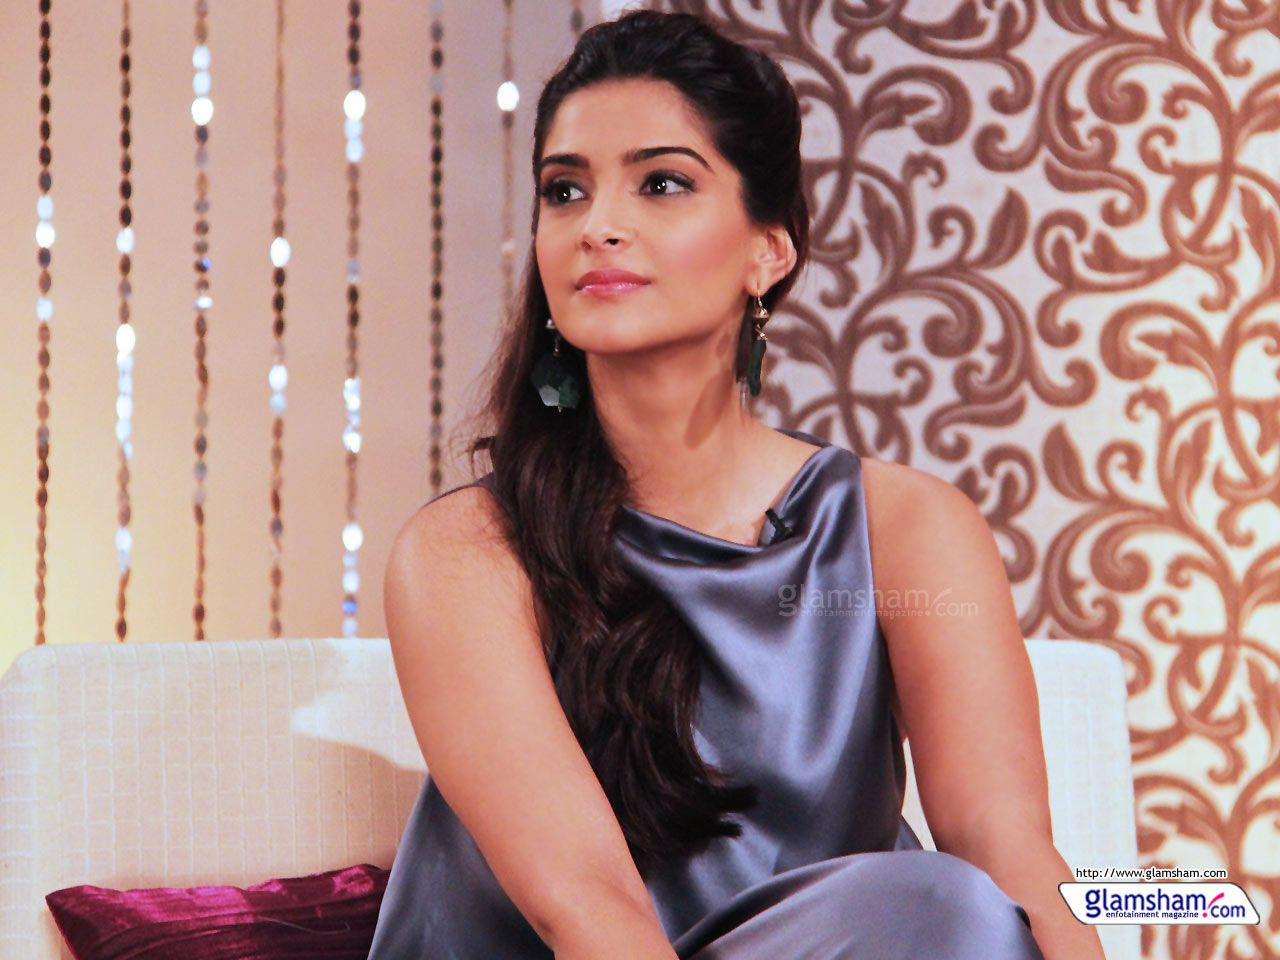 bollywood actress sonam kapoor hd wallpapers ibutters | wallpapers